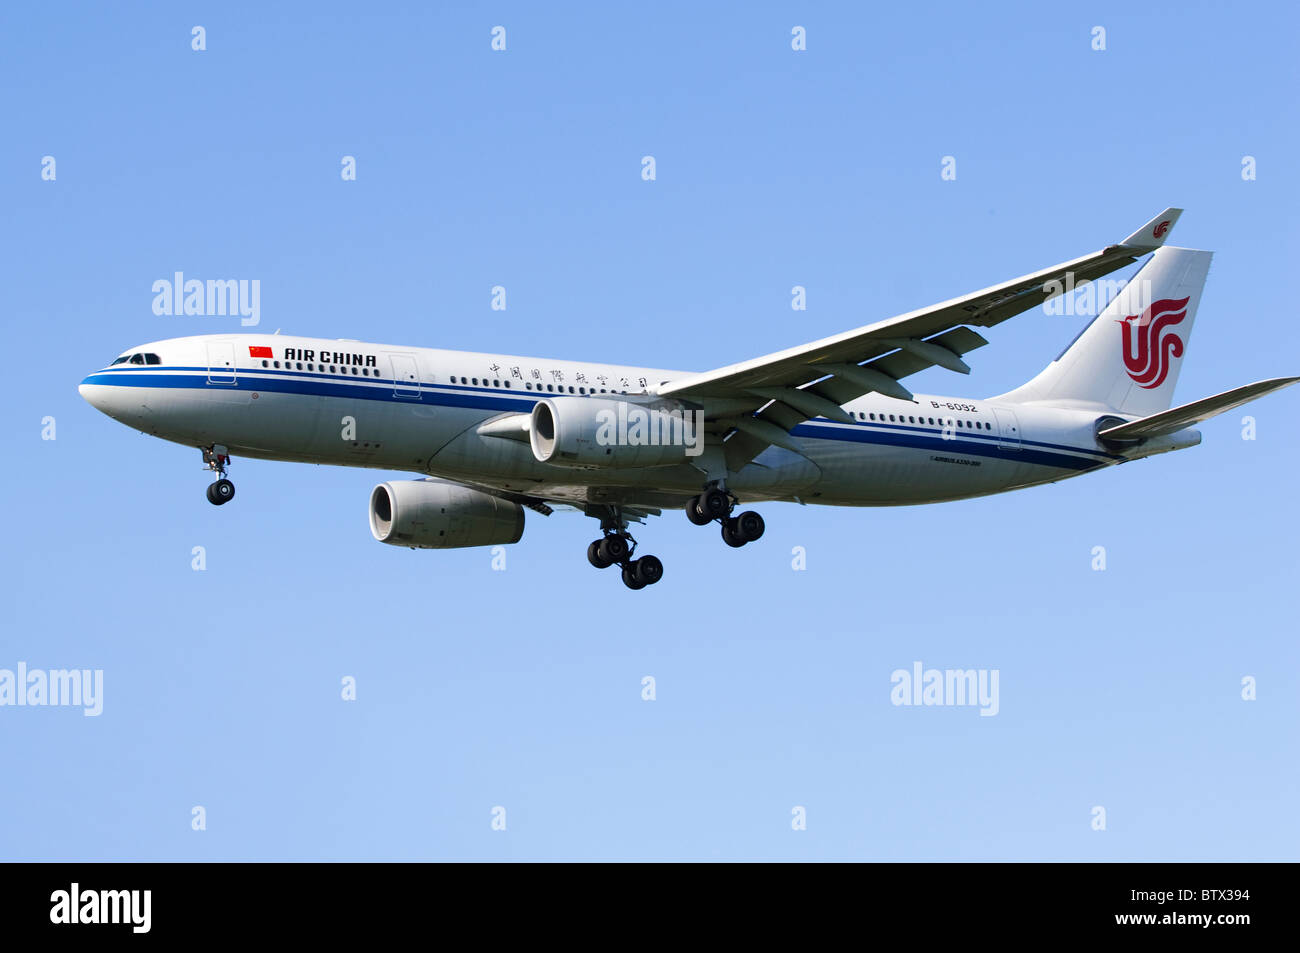 Airbus A330 operated by Air China on approach for landing at London Heathrow Airport - Stock Image